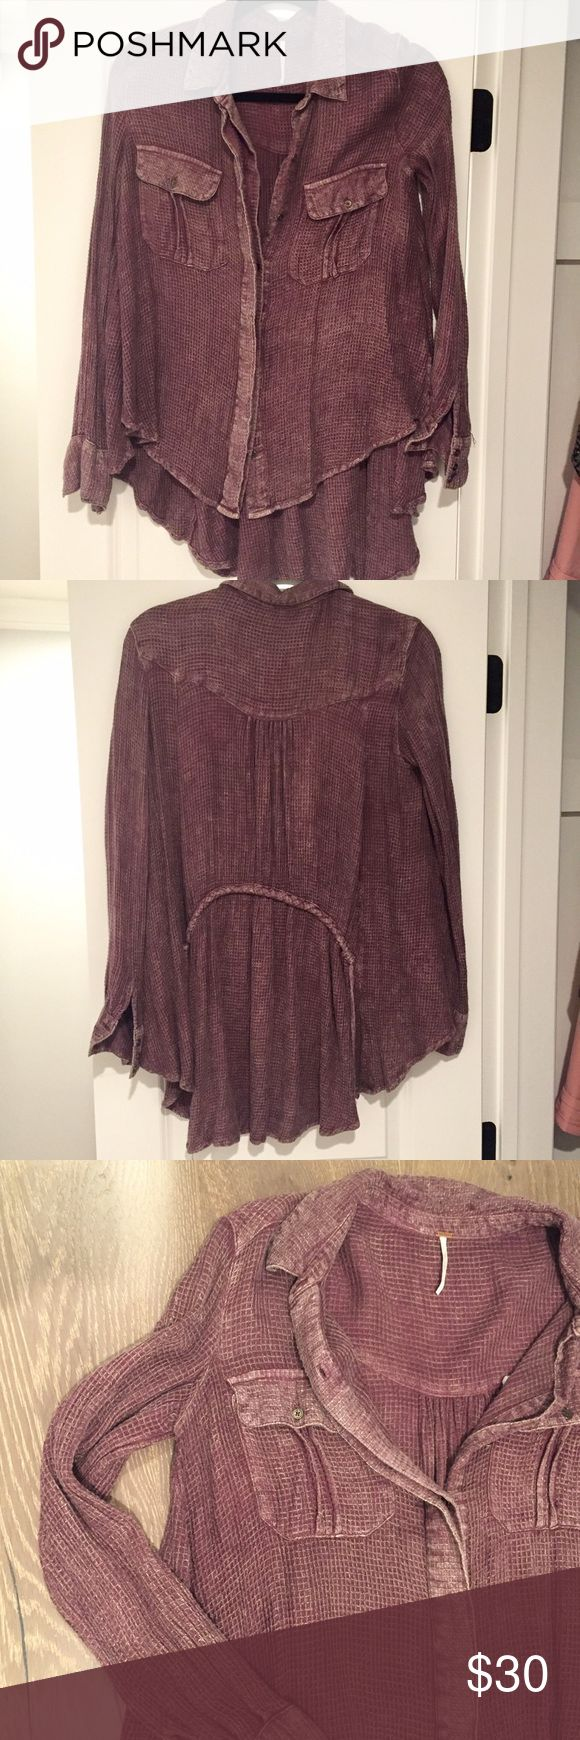 FREE PEOPLE long sleeve loose shirt Free people long sleeve button up loosely fitted top. The distressed look gives it a classy vintage style. Used but good condition. 100% Rayon. Free People Tops Button Down Shirts